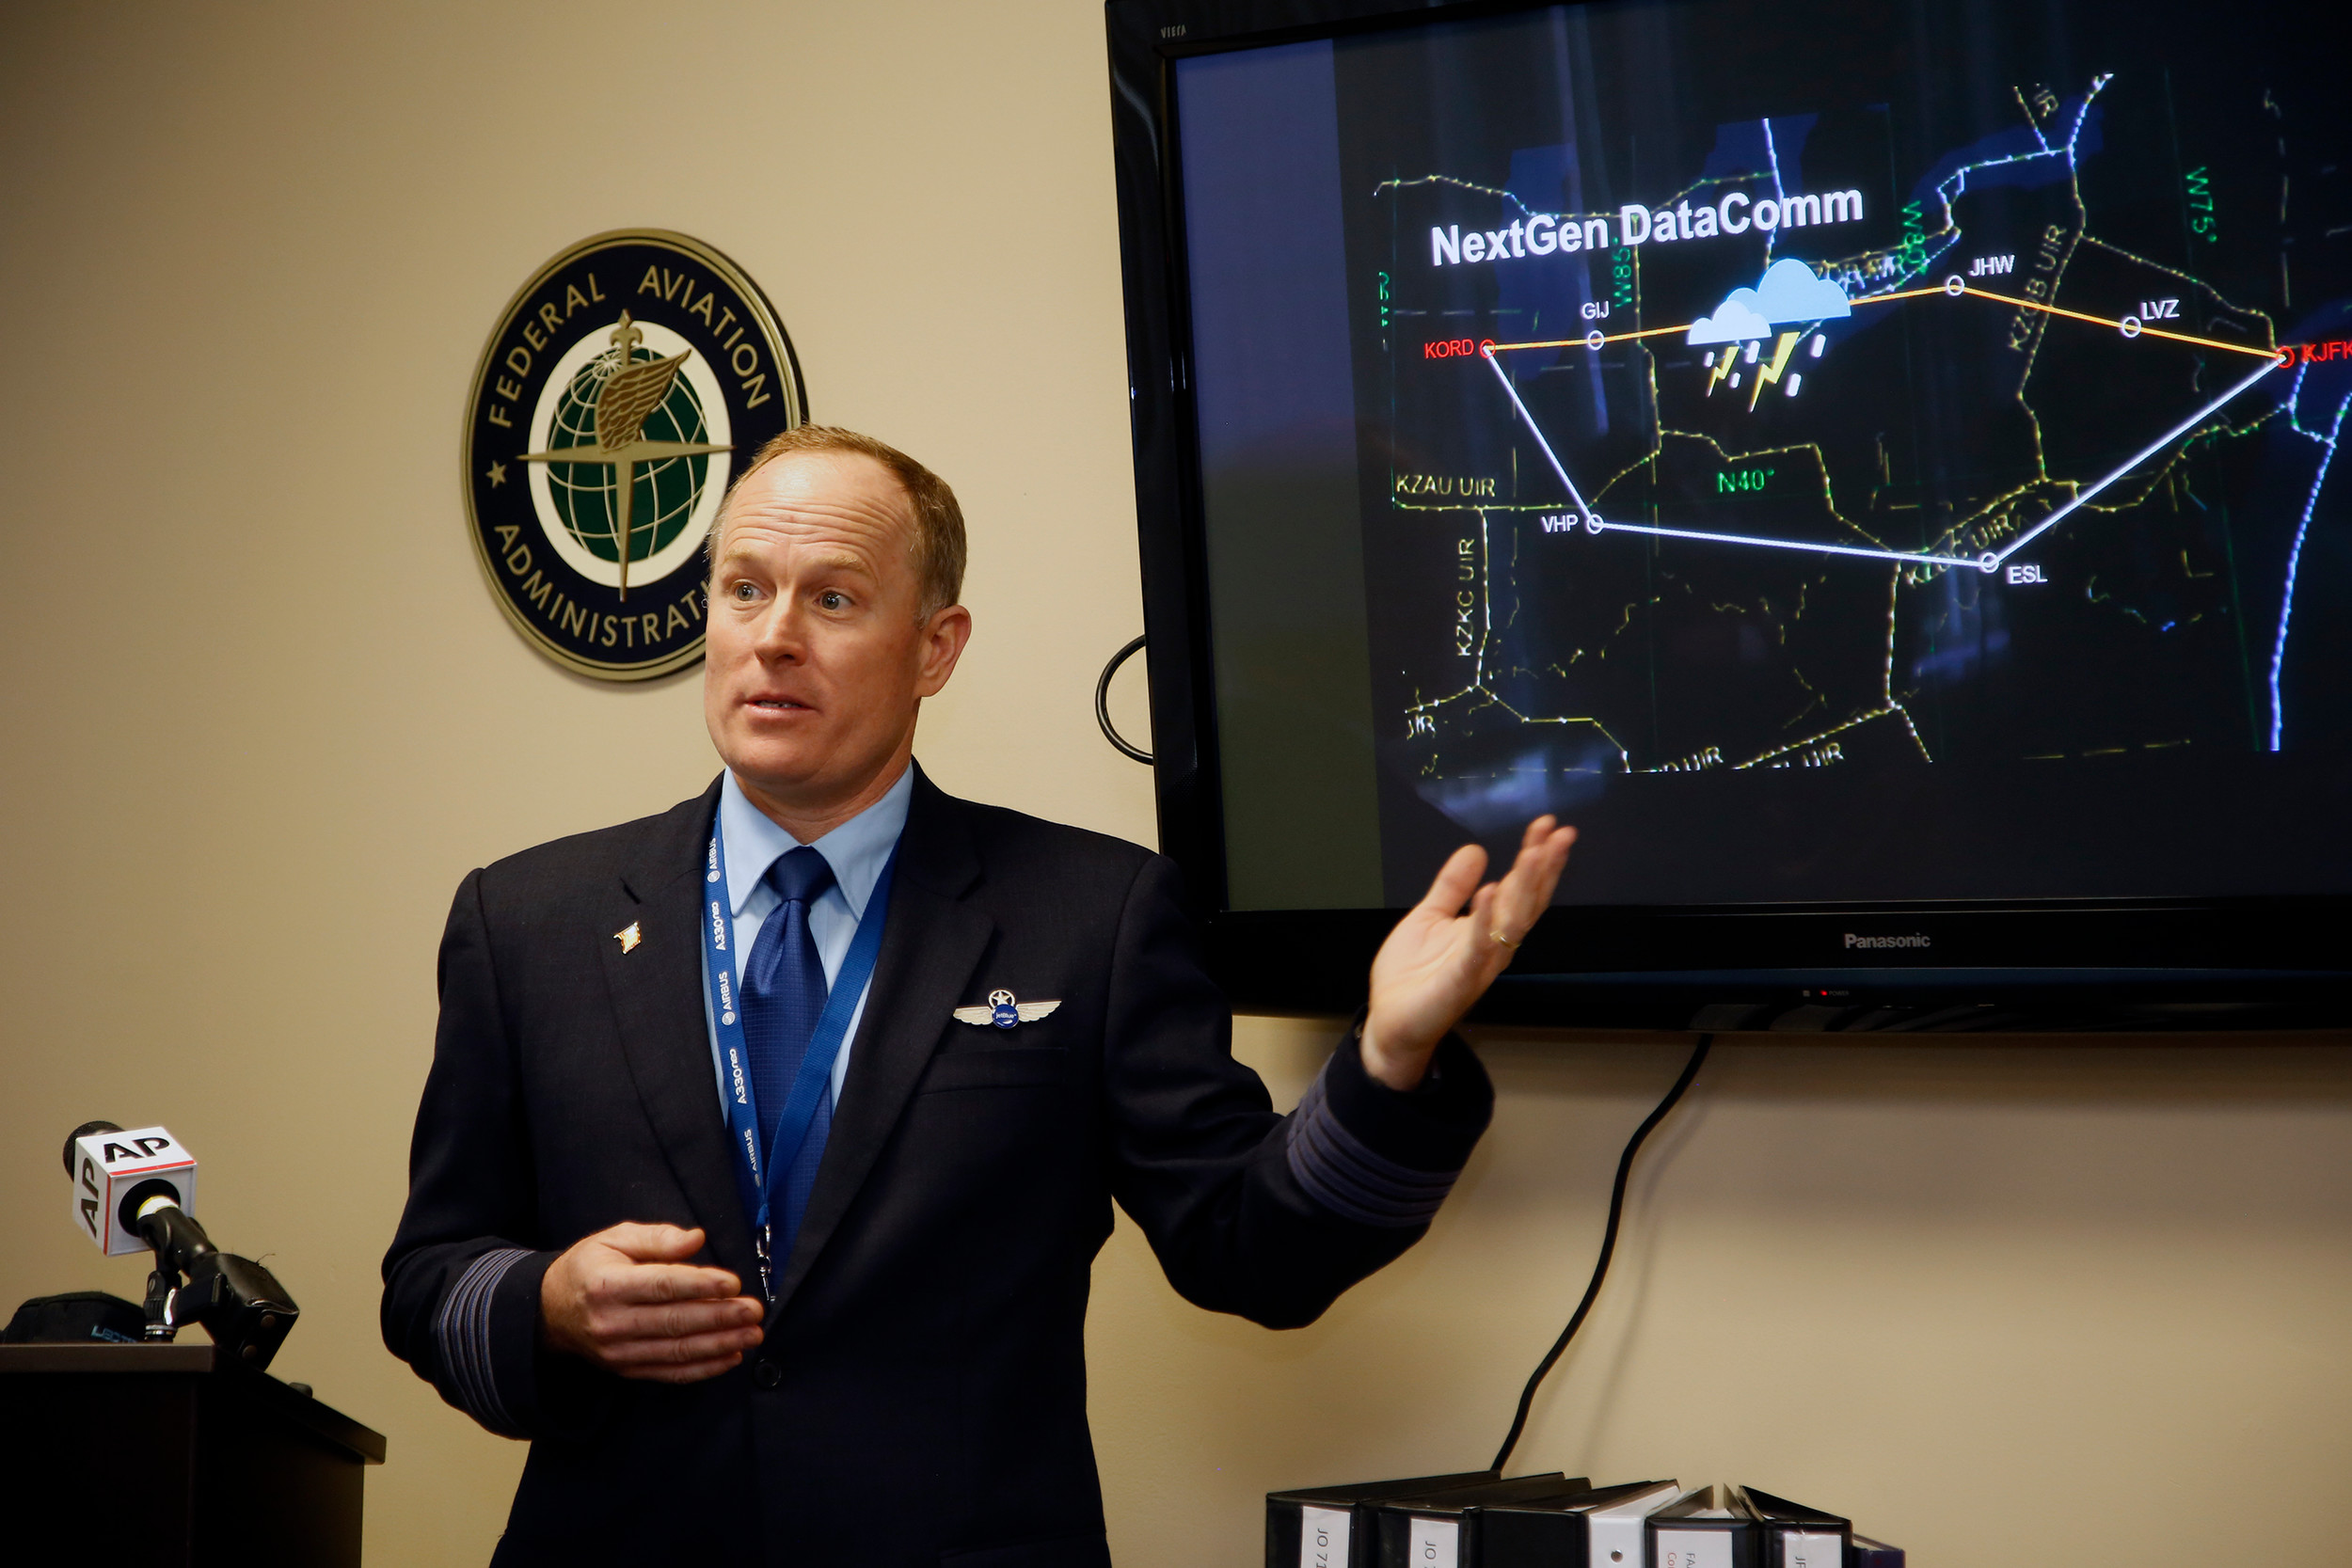 Charles Cook III, manager of fleet programs and technology for JetBlue Airways, demonstrated NextGen during a press event in March.